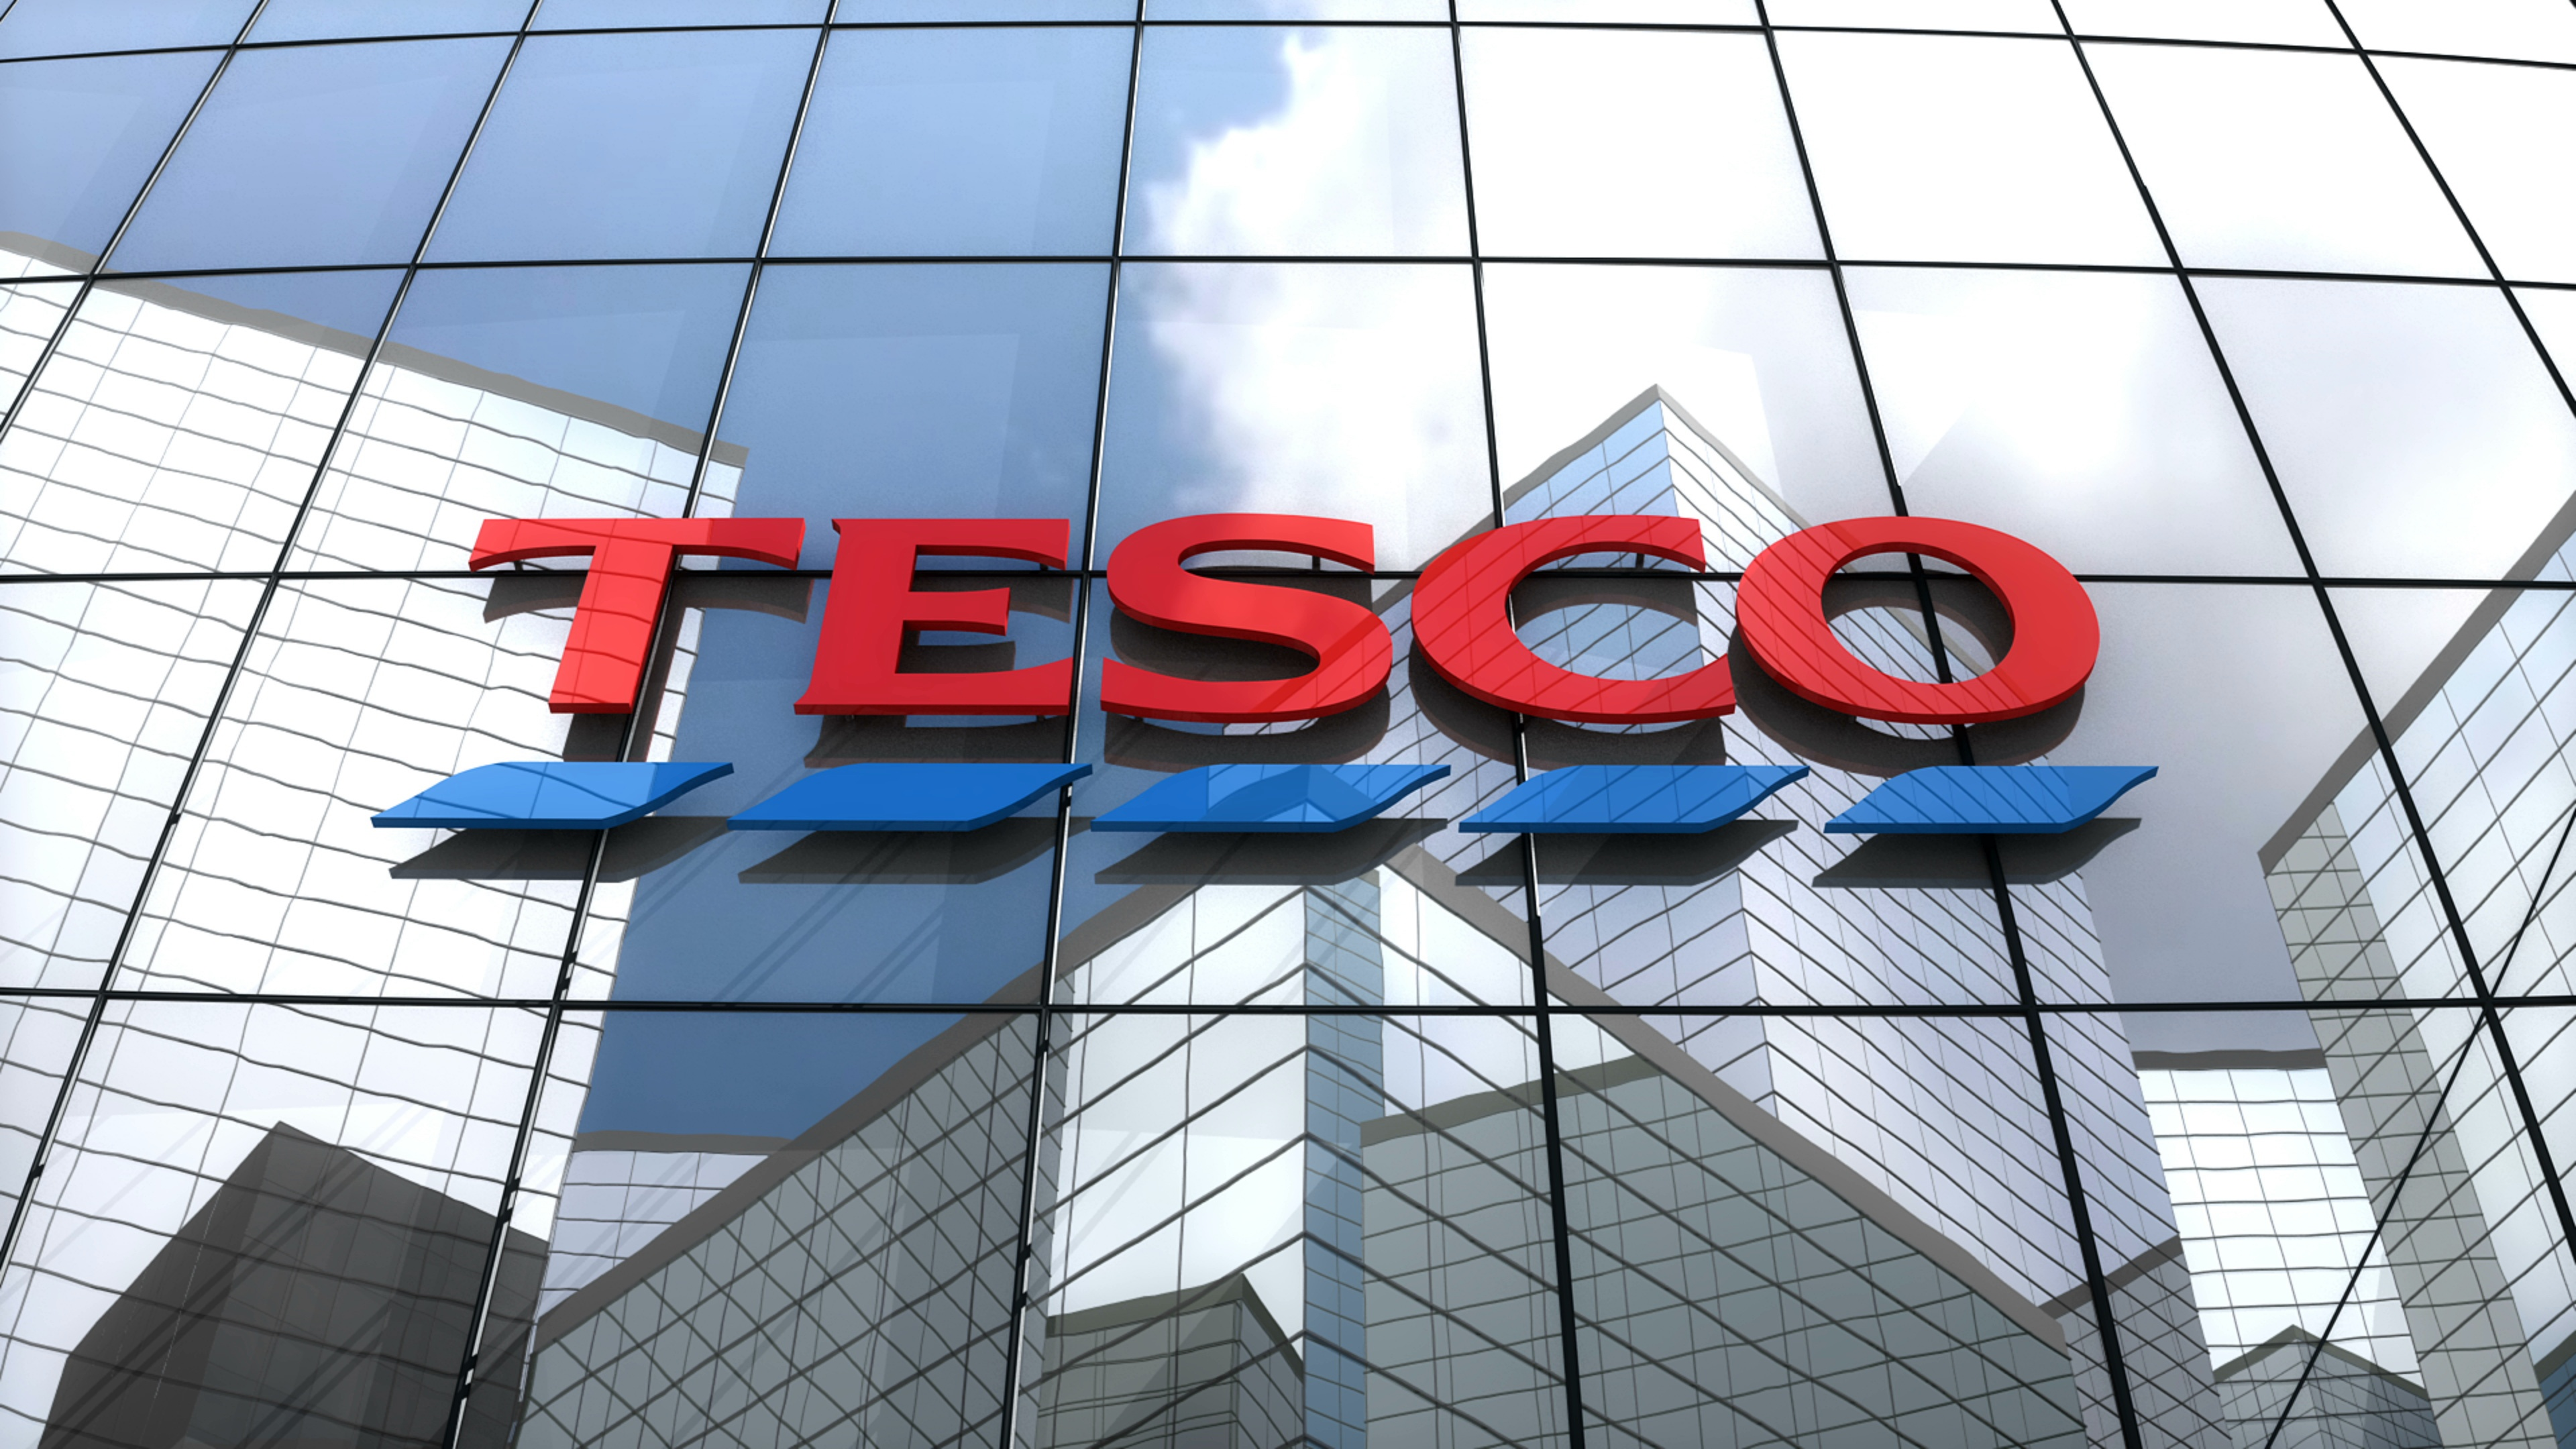 Tesco considers selling Thailand, Malaysia businesses